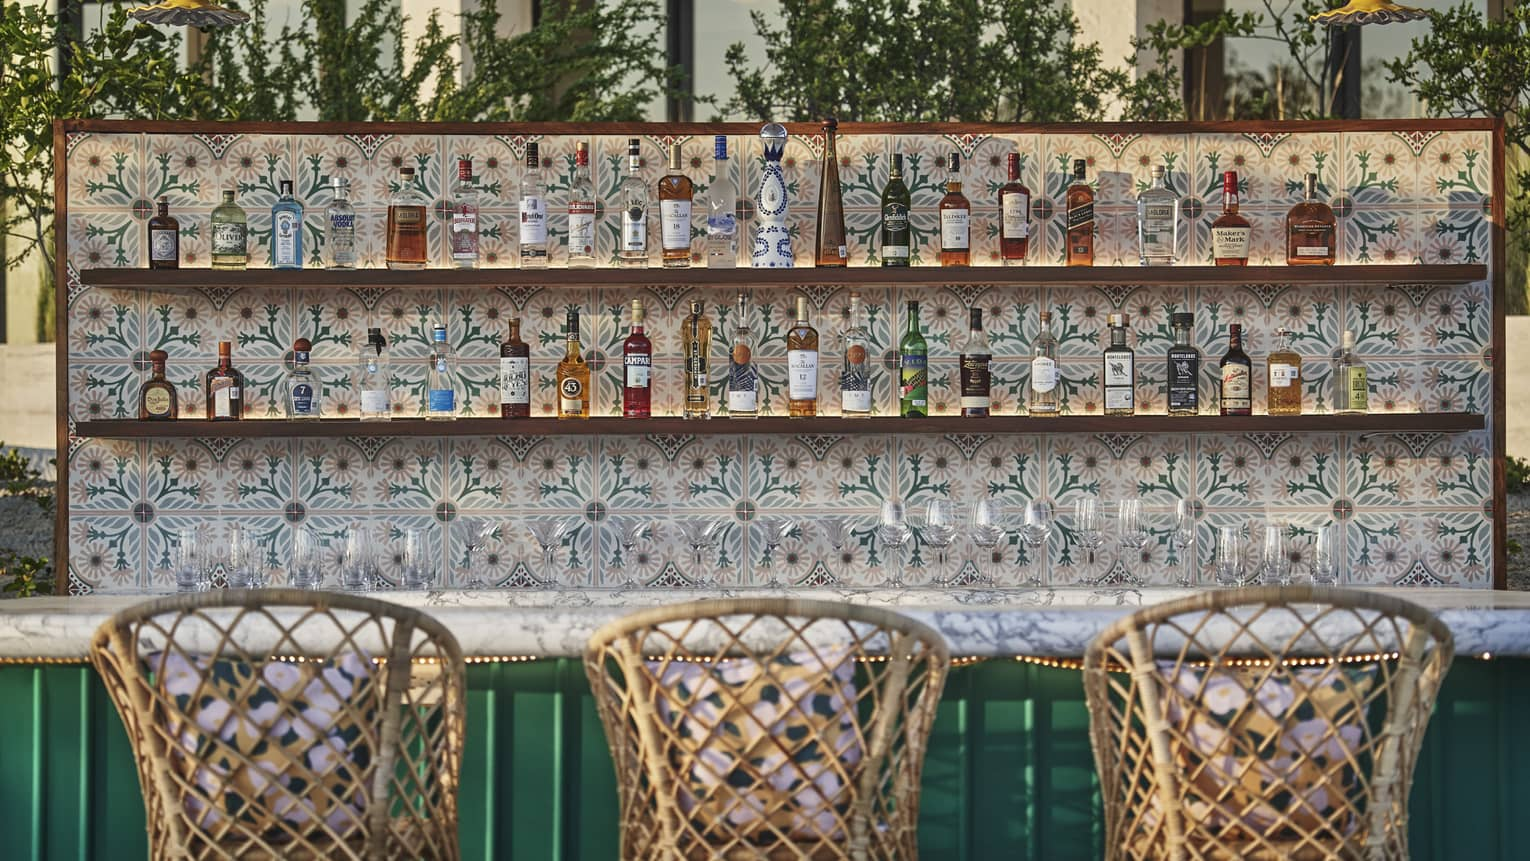 Three ratan bar stools are in front of a teal outdoor bar with bottles of liquor sitting on tiled shelves